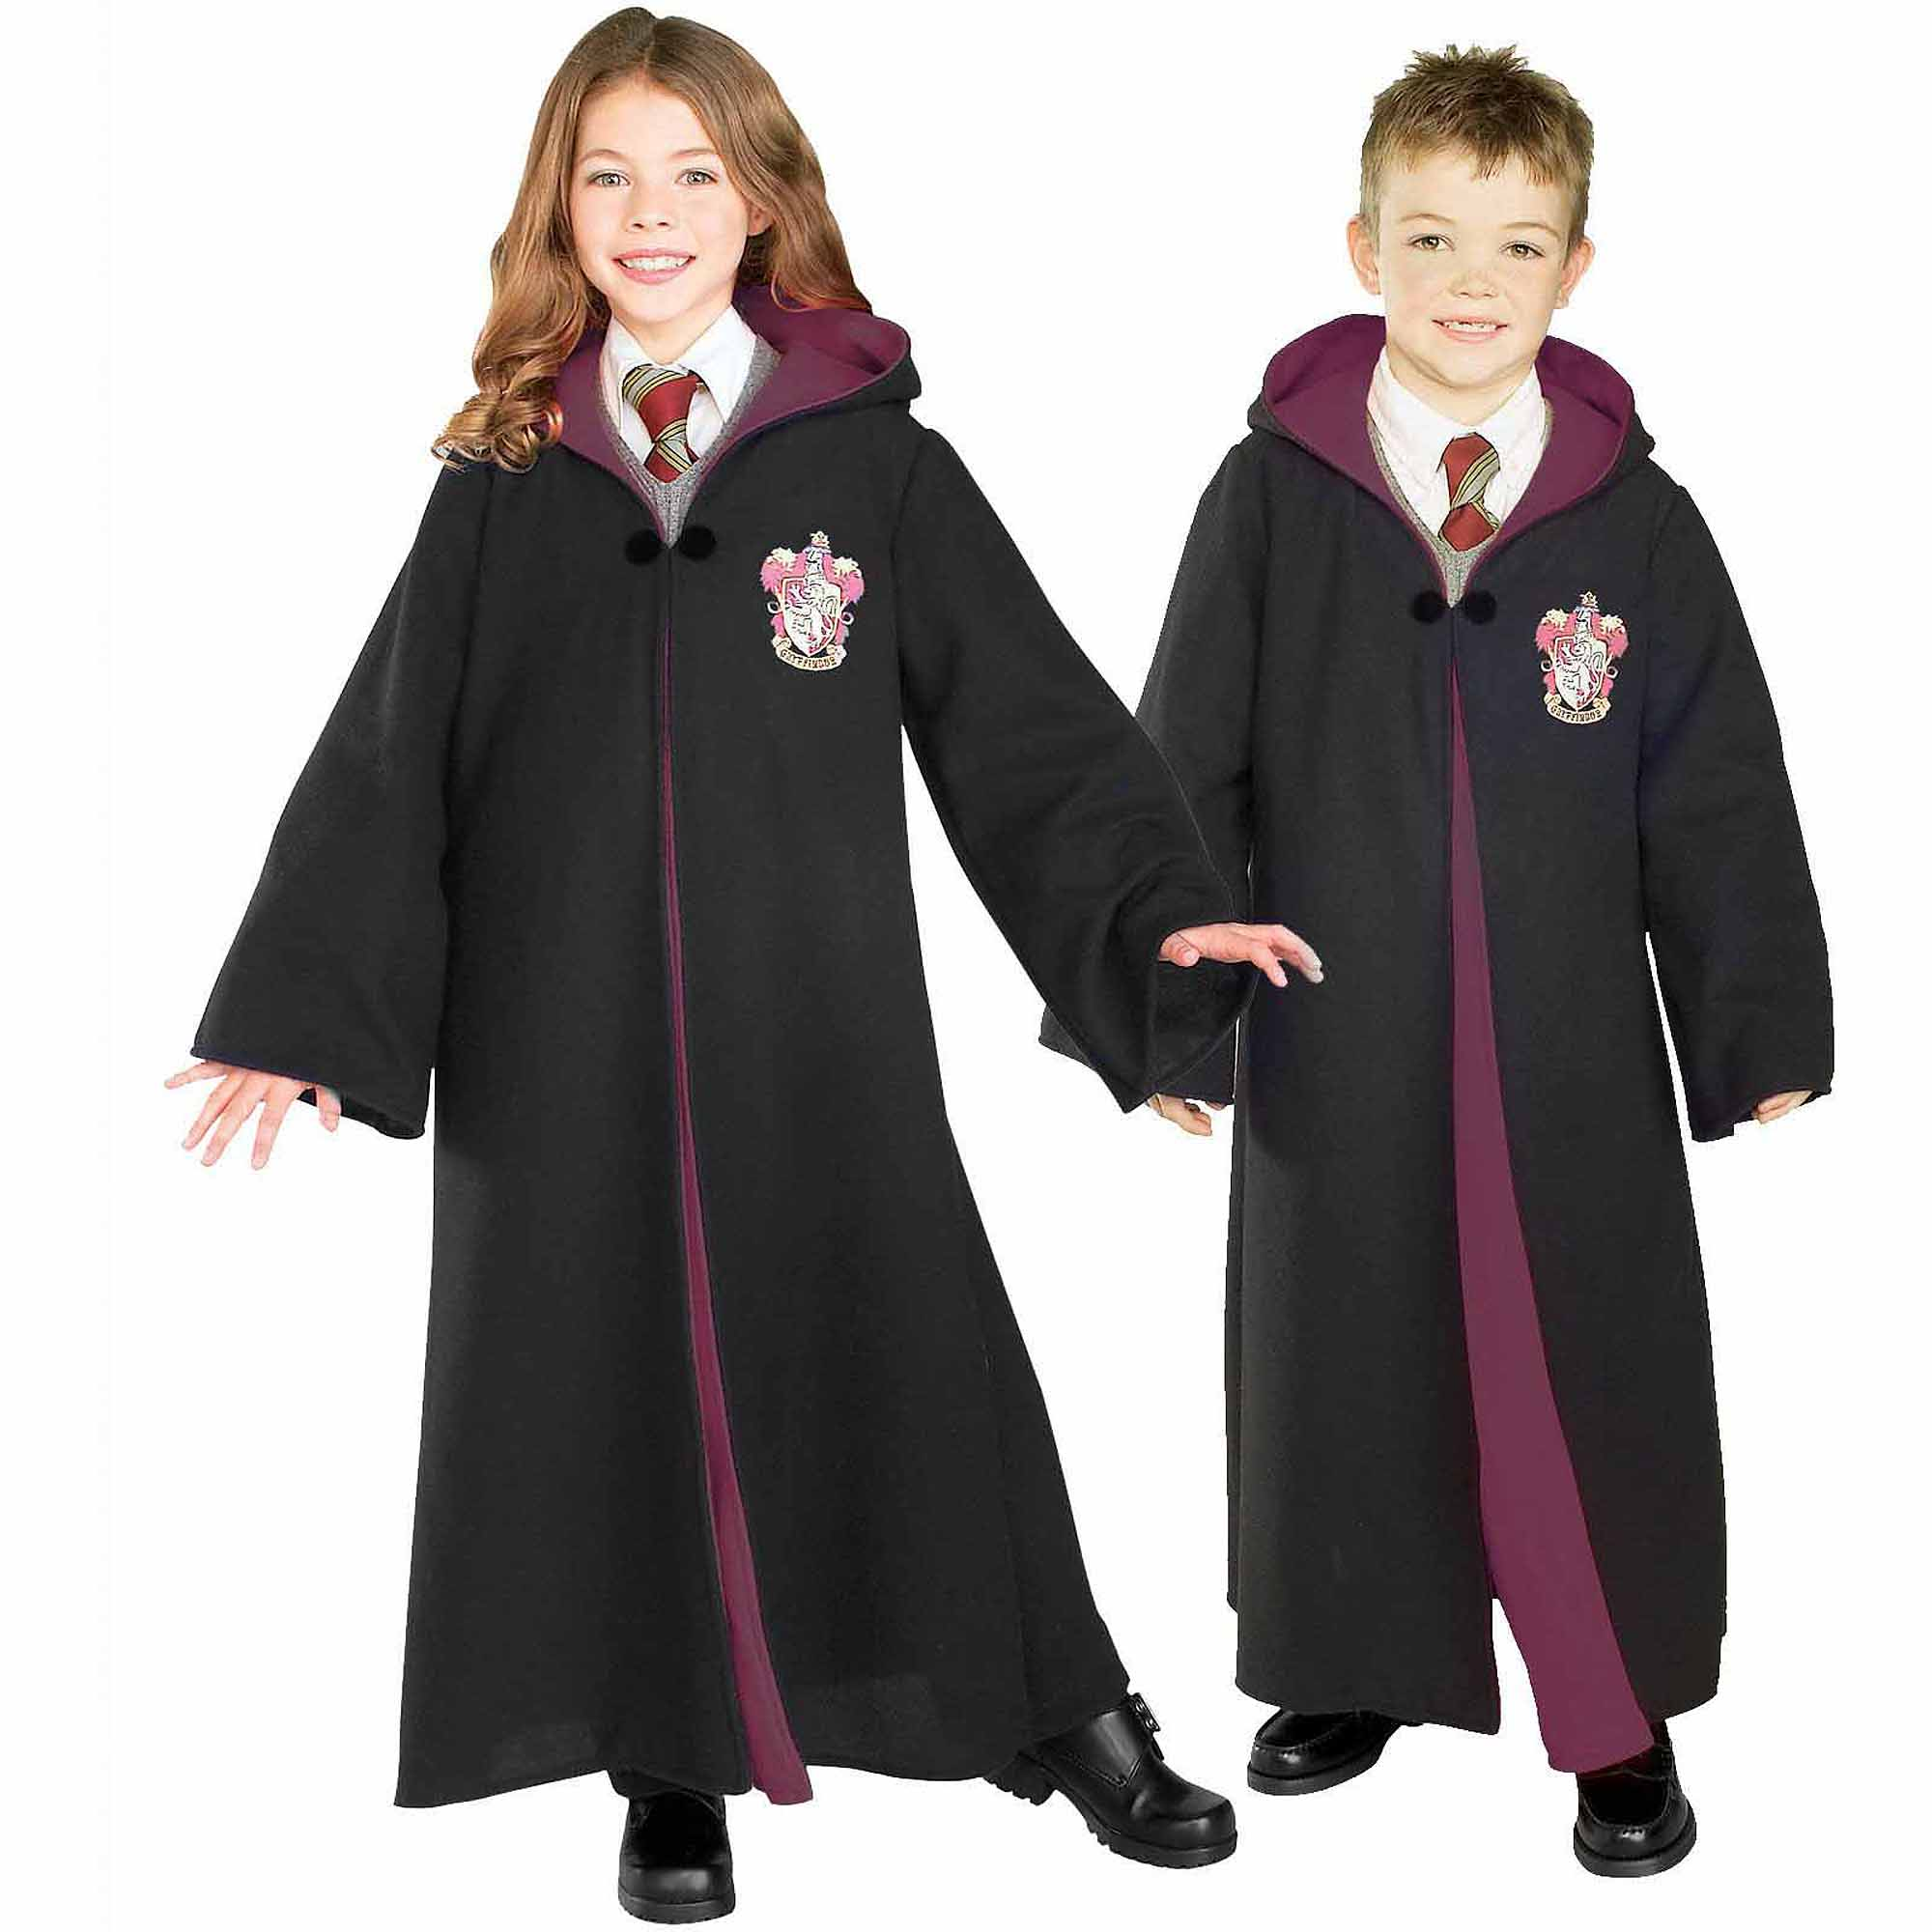 Harry Potter Deluxe Gryffindor Robe Child Halloween Costume